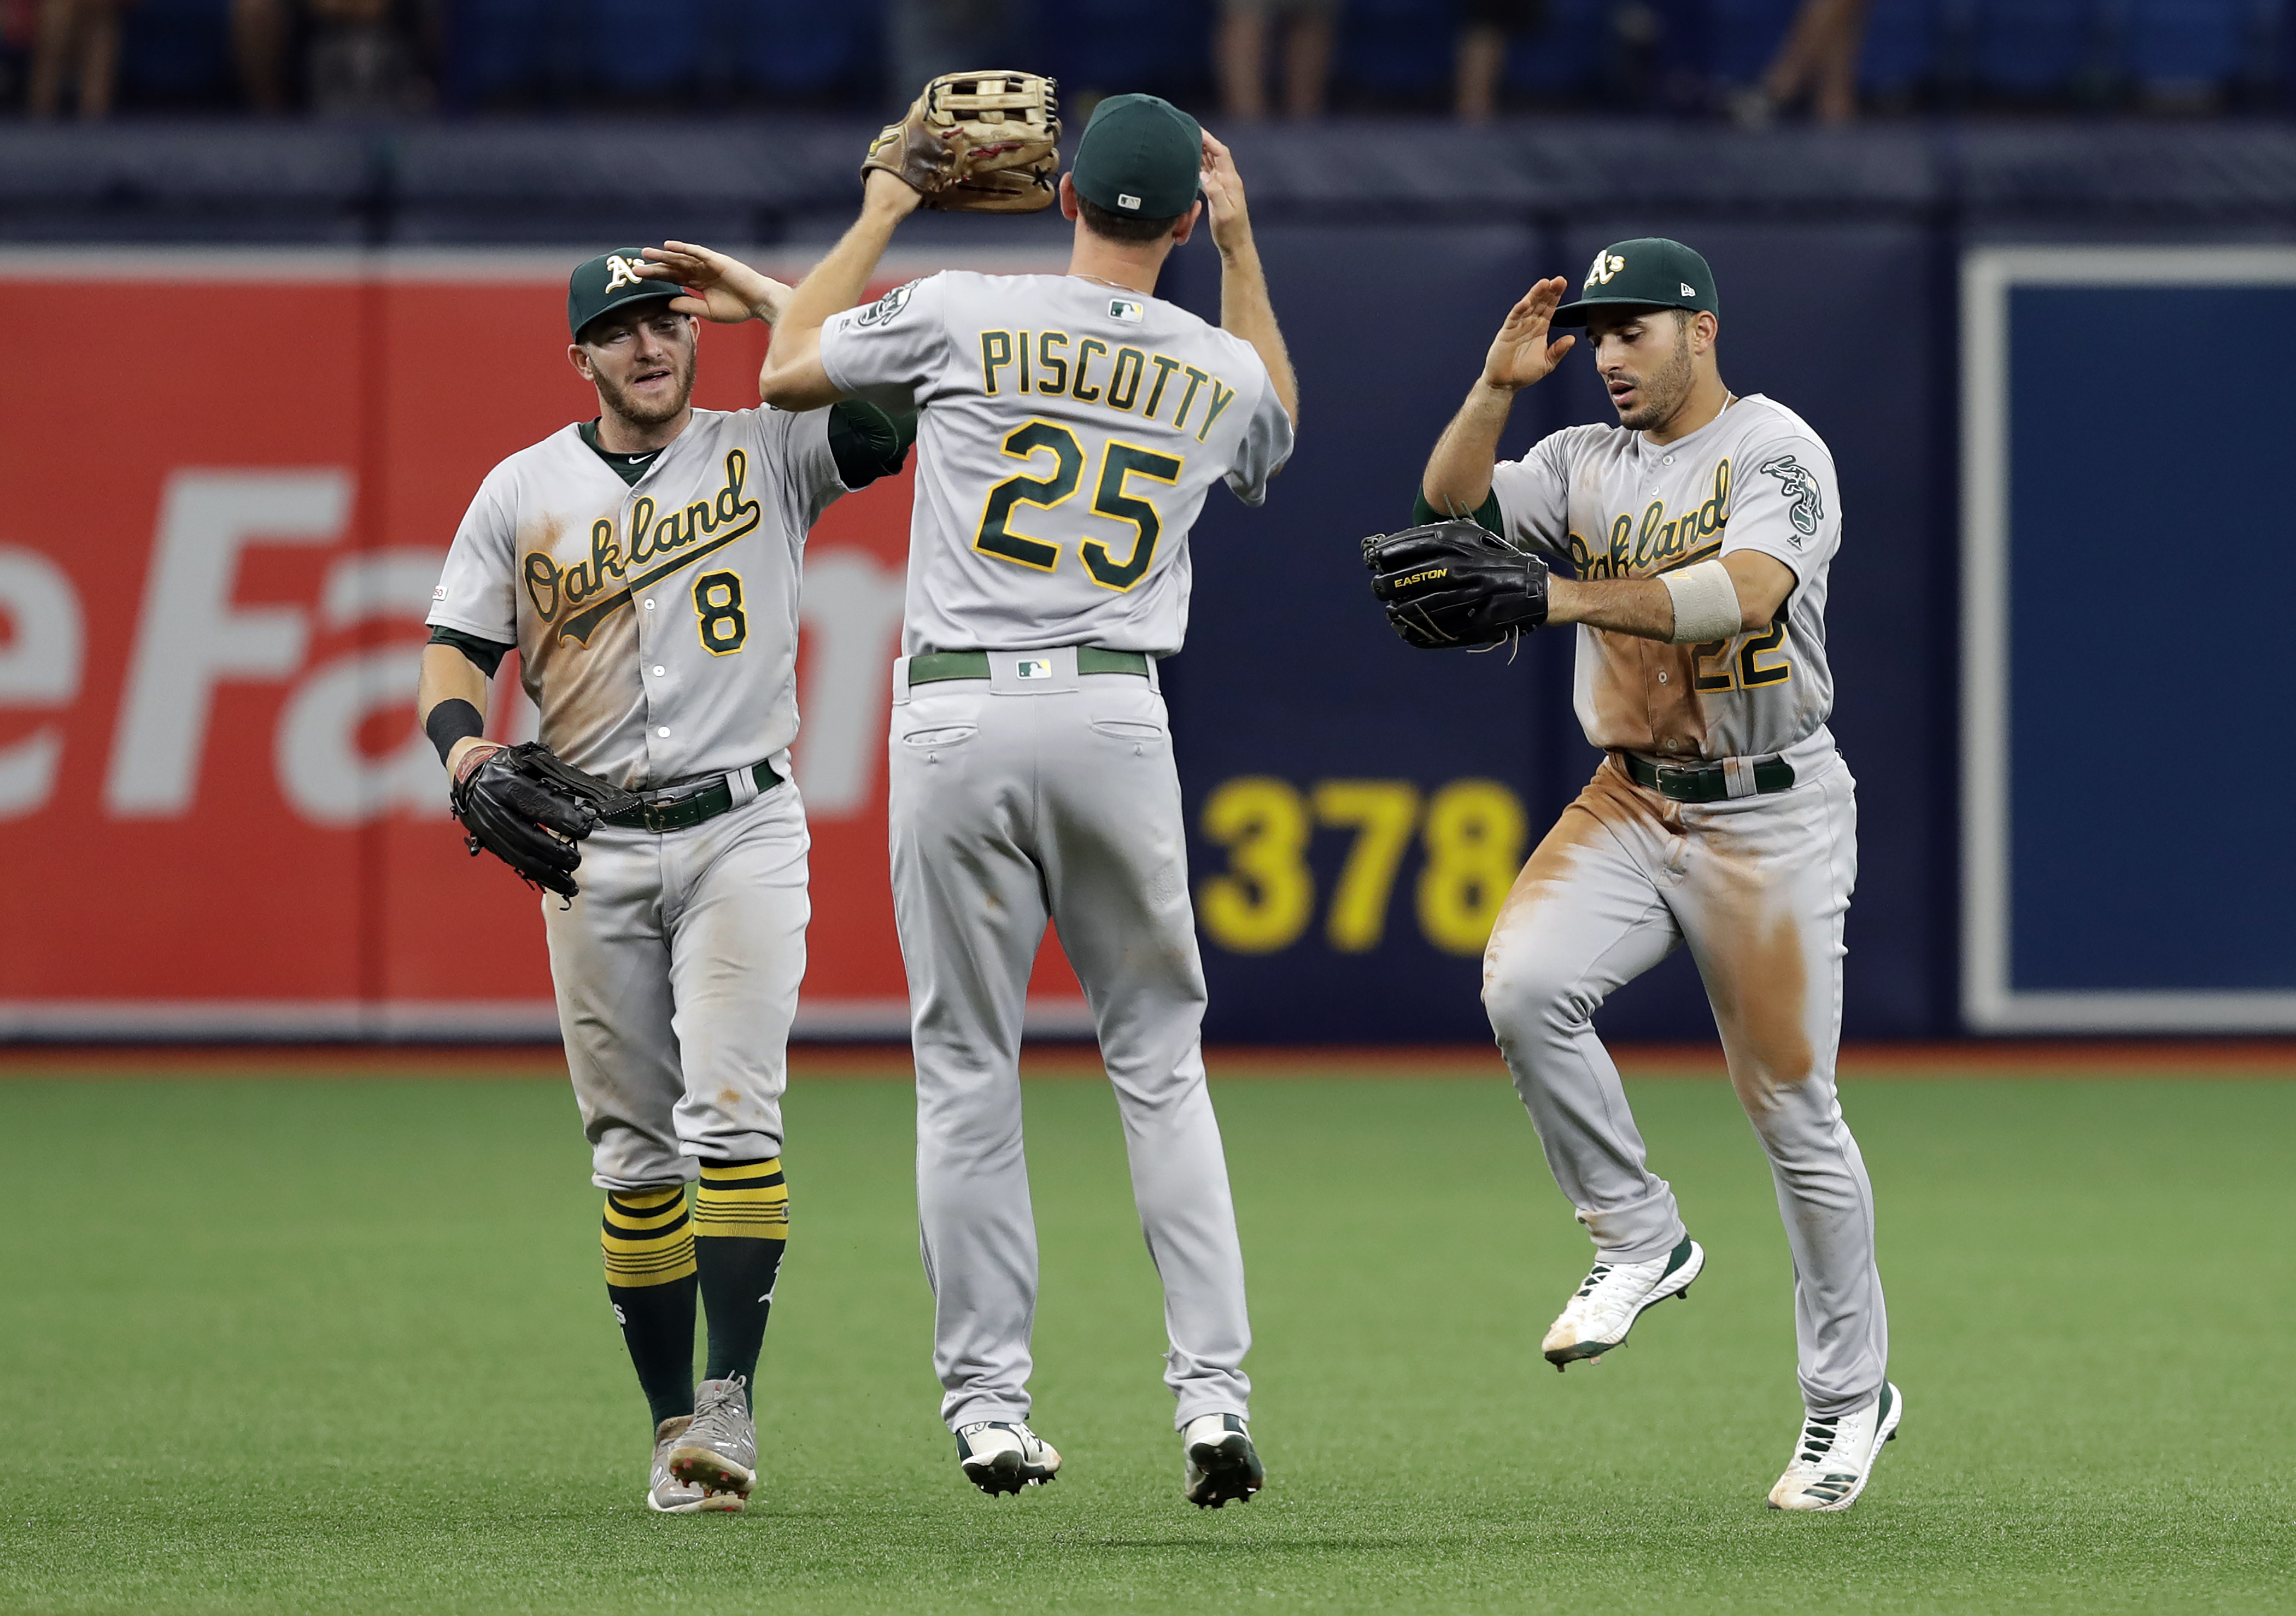 A's Piscotty undergoes surgery to remove melanoma from ear